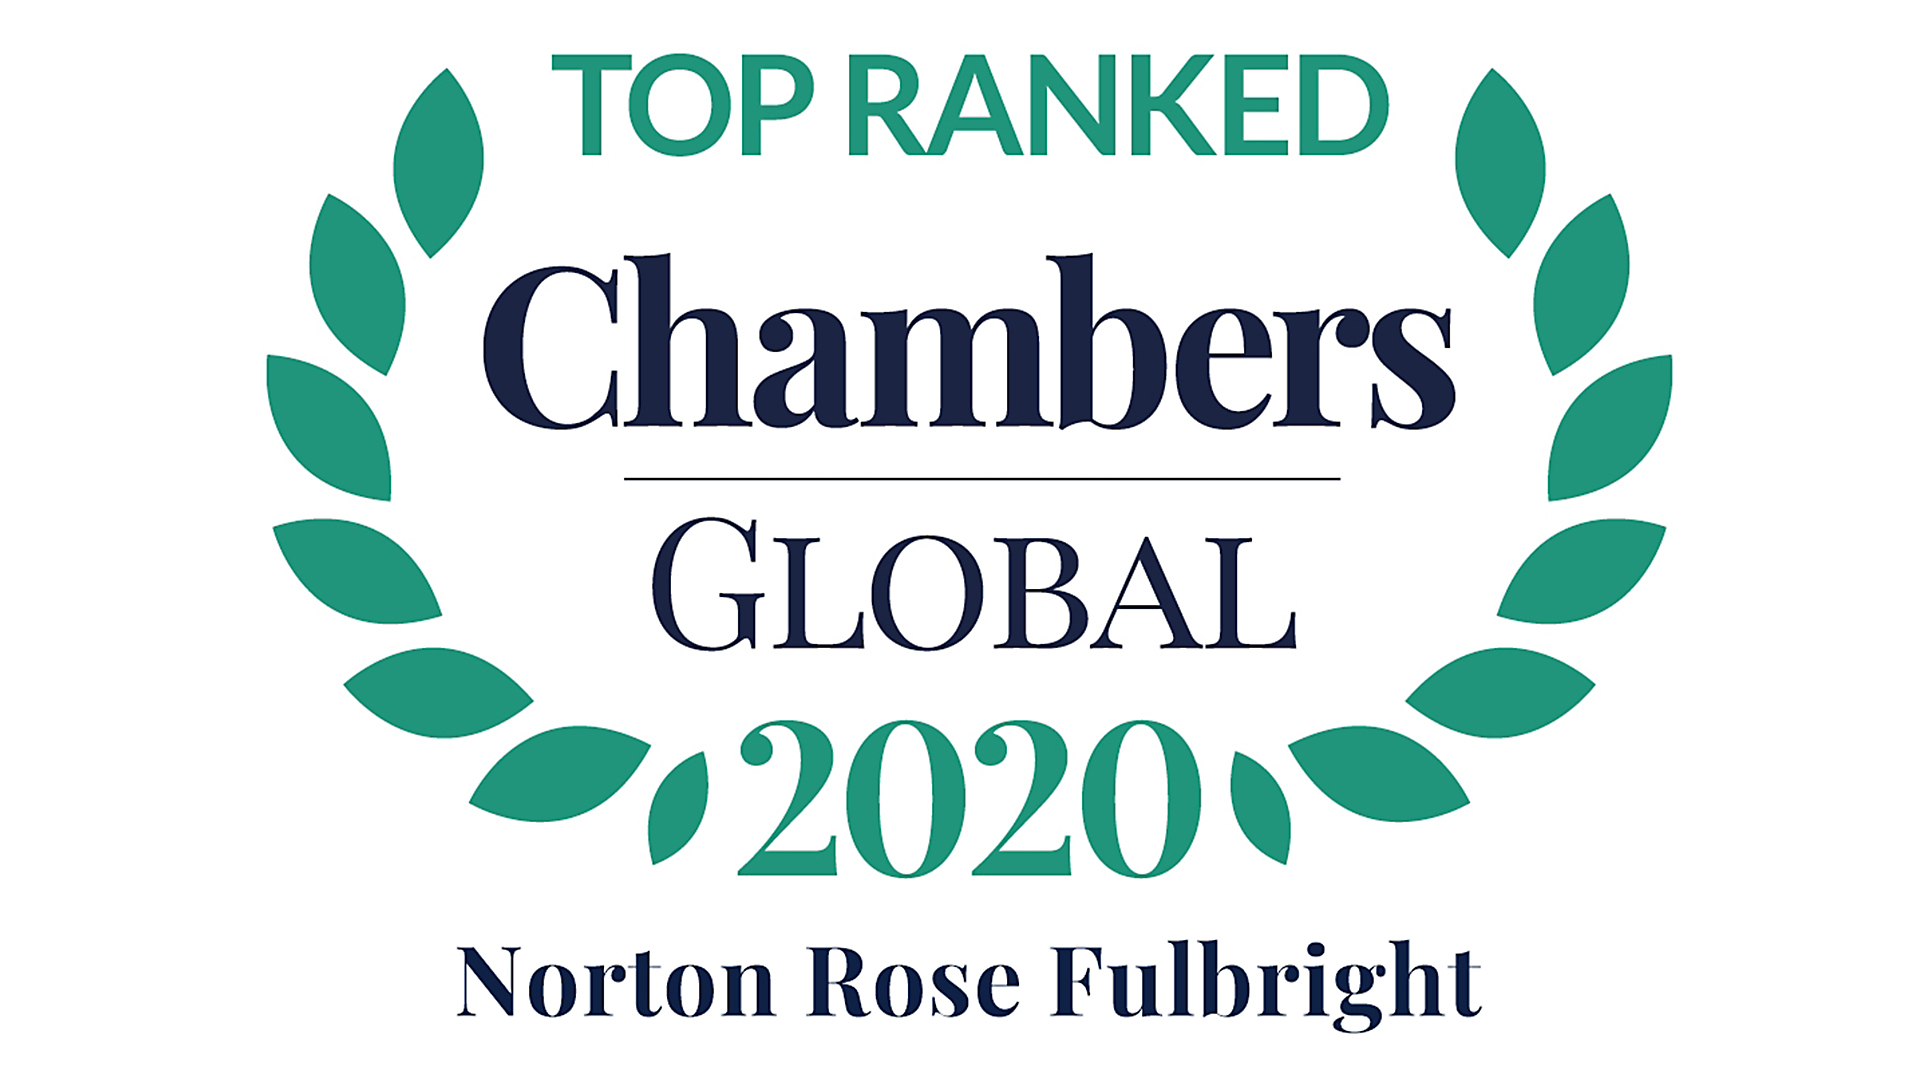 Top ranked Chambers Global 2020